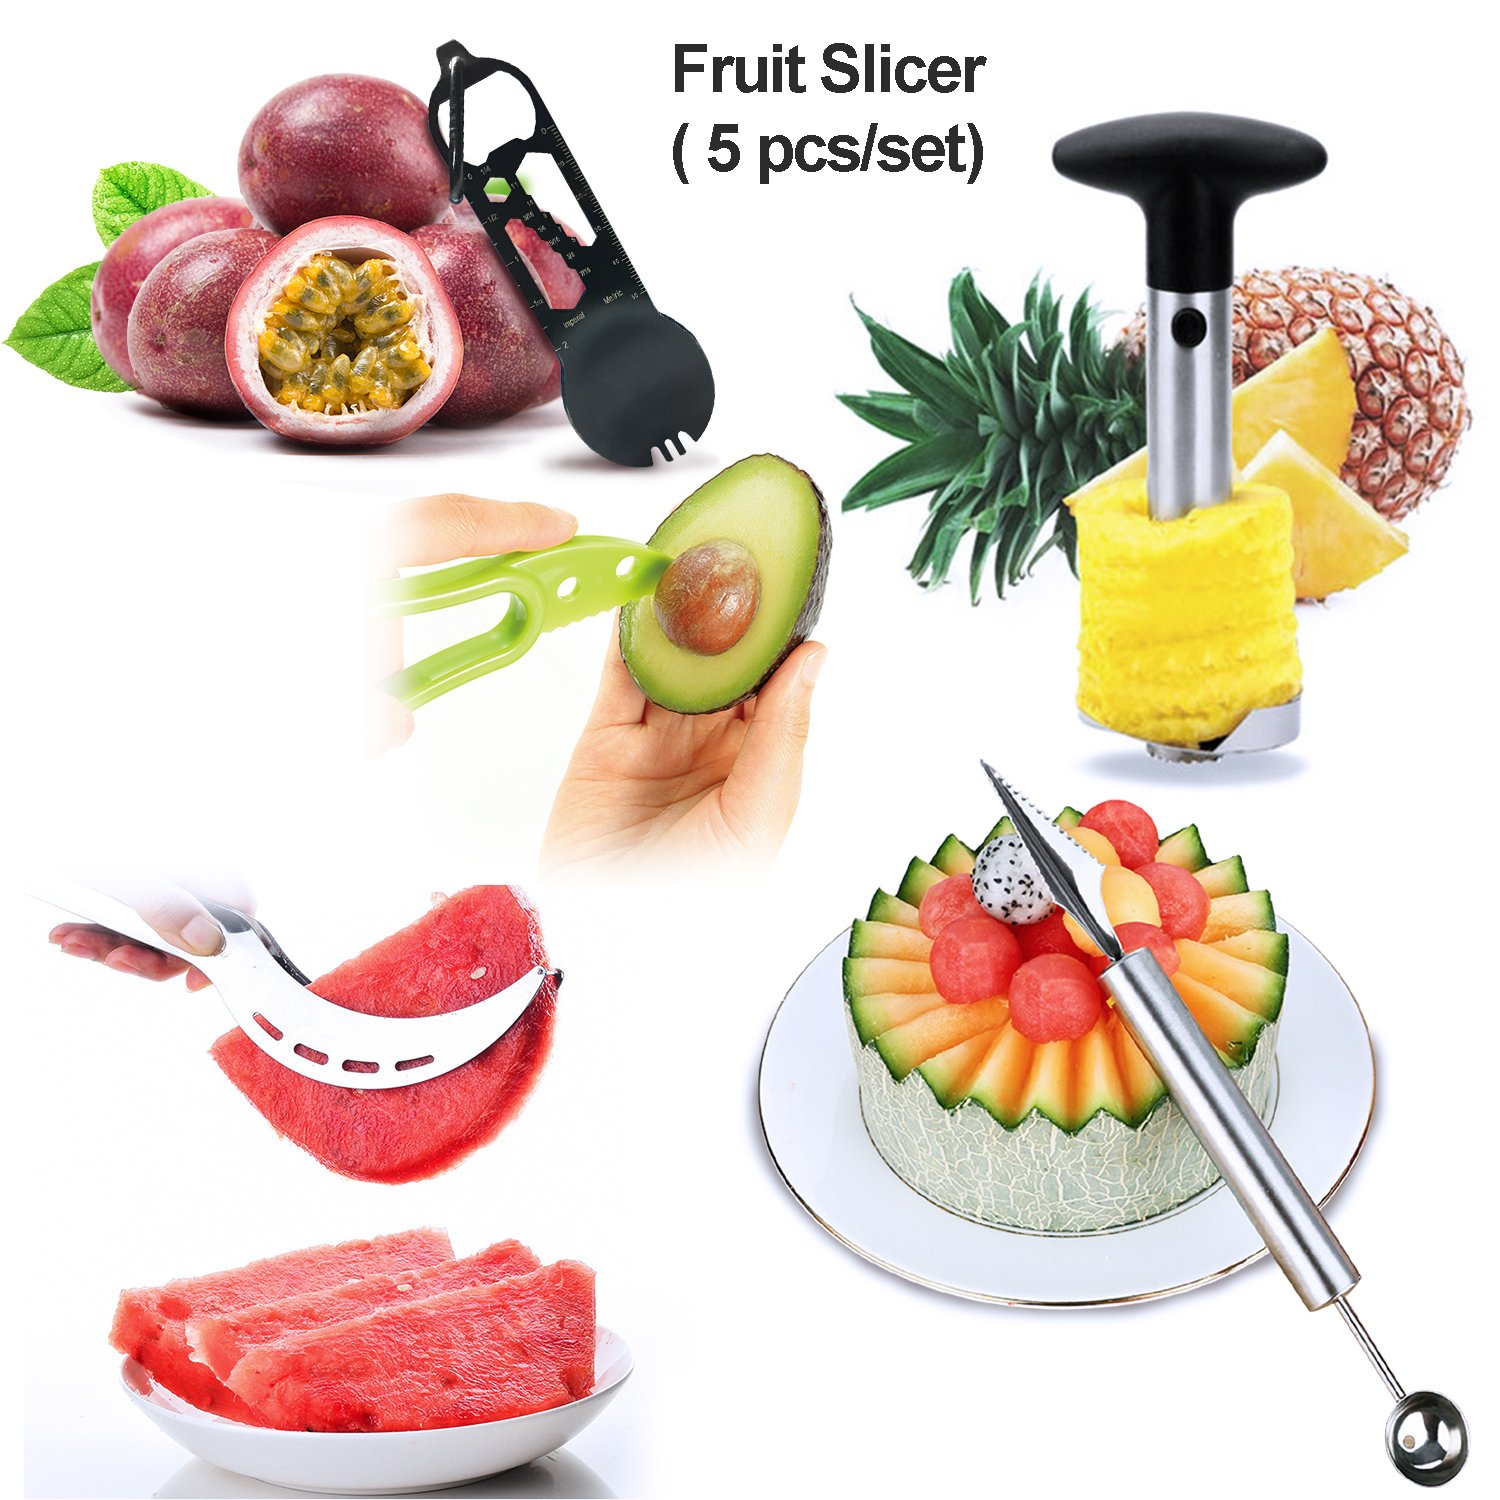 Lasten Fruit Slicer Peeler Set of 5 Included Stainless Steel Pineapple Corer, Watermelon Slicer, Avocado Slicer, Carving Knife&Melon Baller Scoop and Stainless Steel Outdoor Spork by Lasten